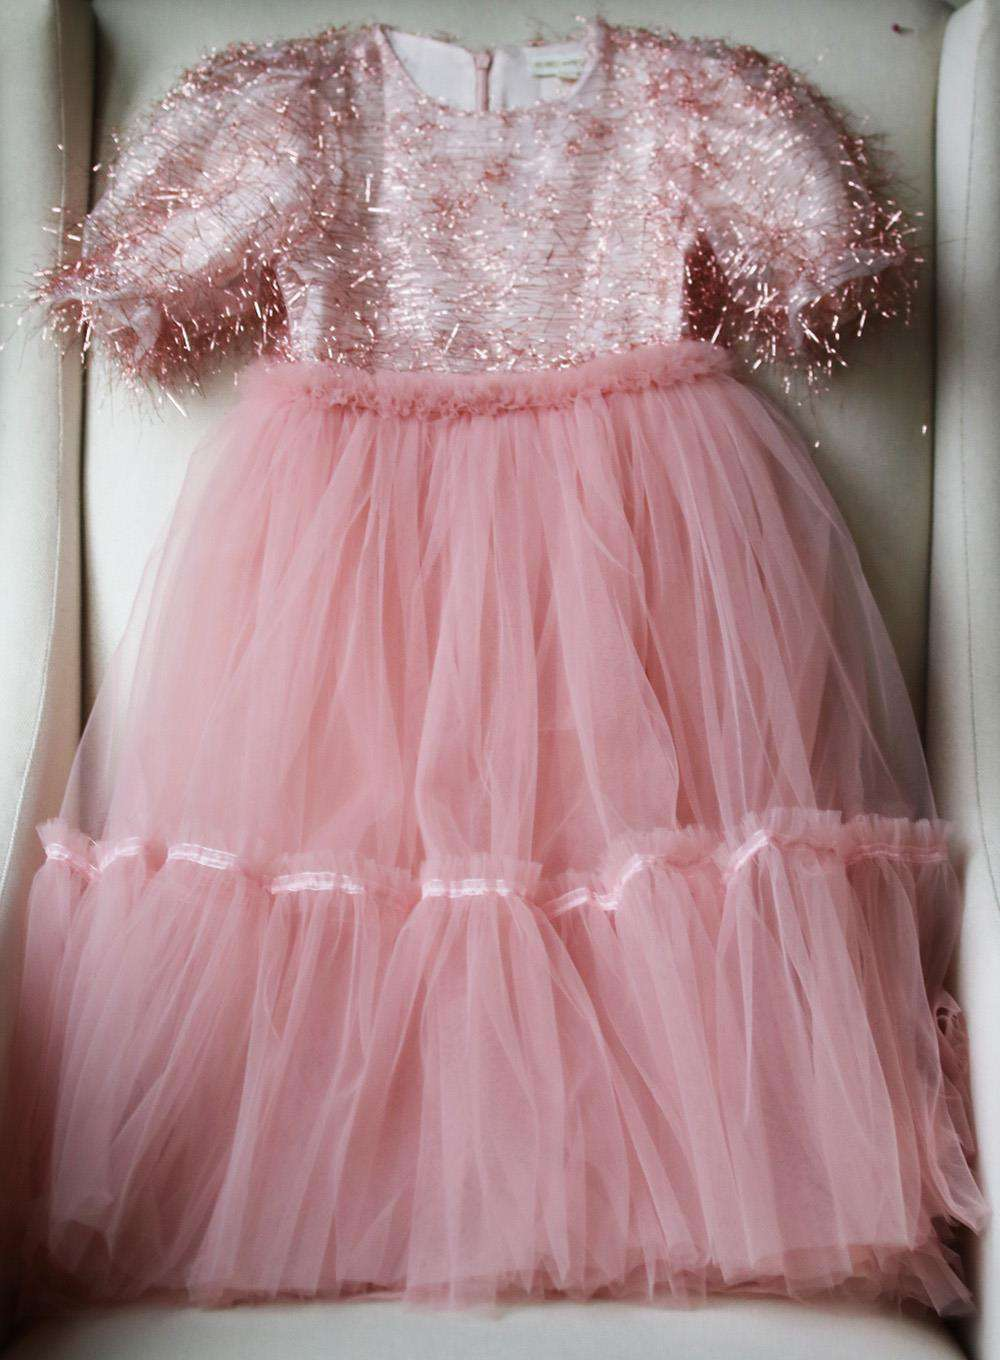 SORCI AND FOFA KIDS GIRLS SHIMMER TULLE GOWN 5 YEARS